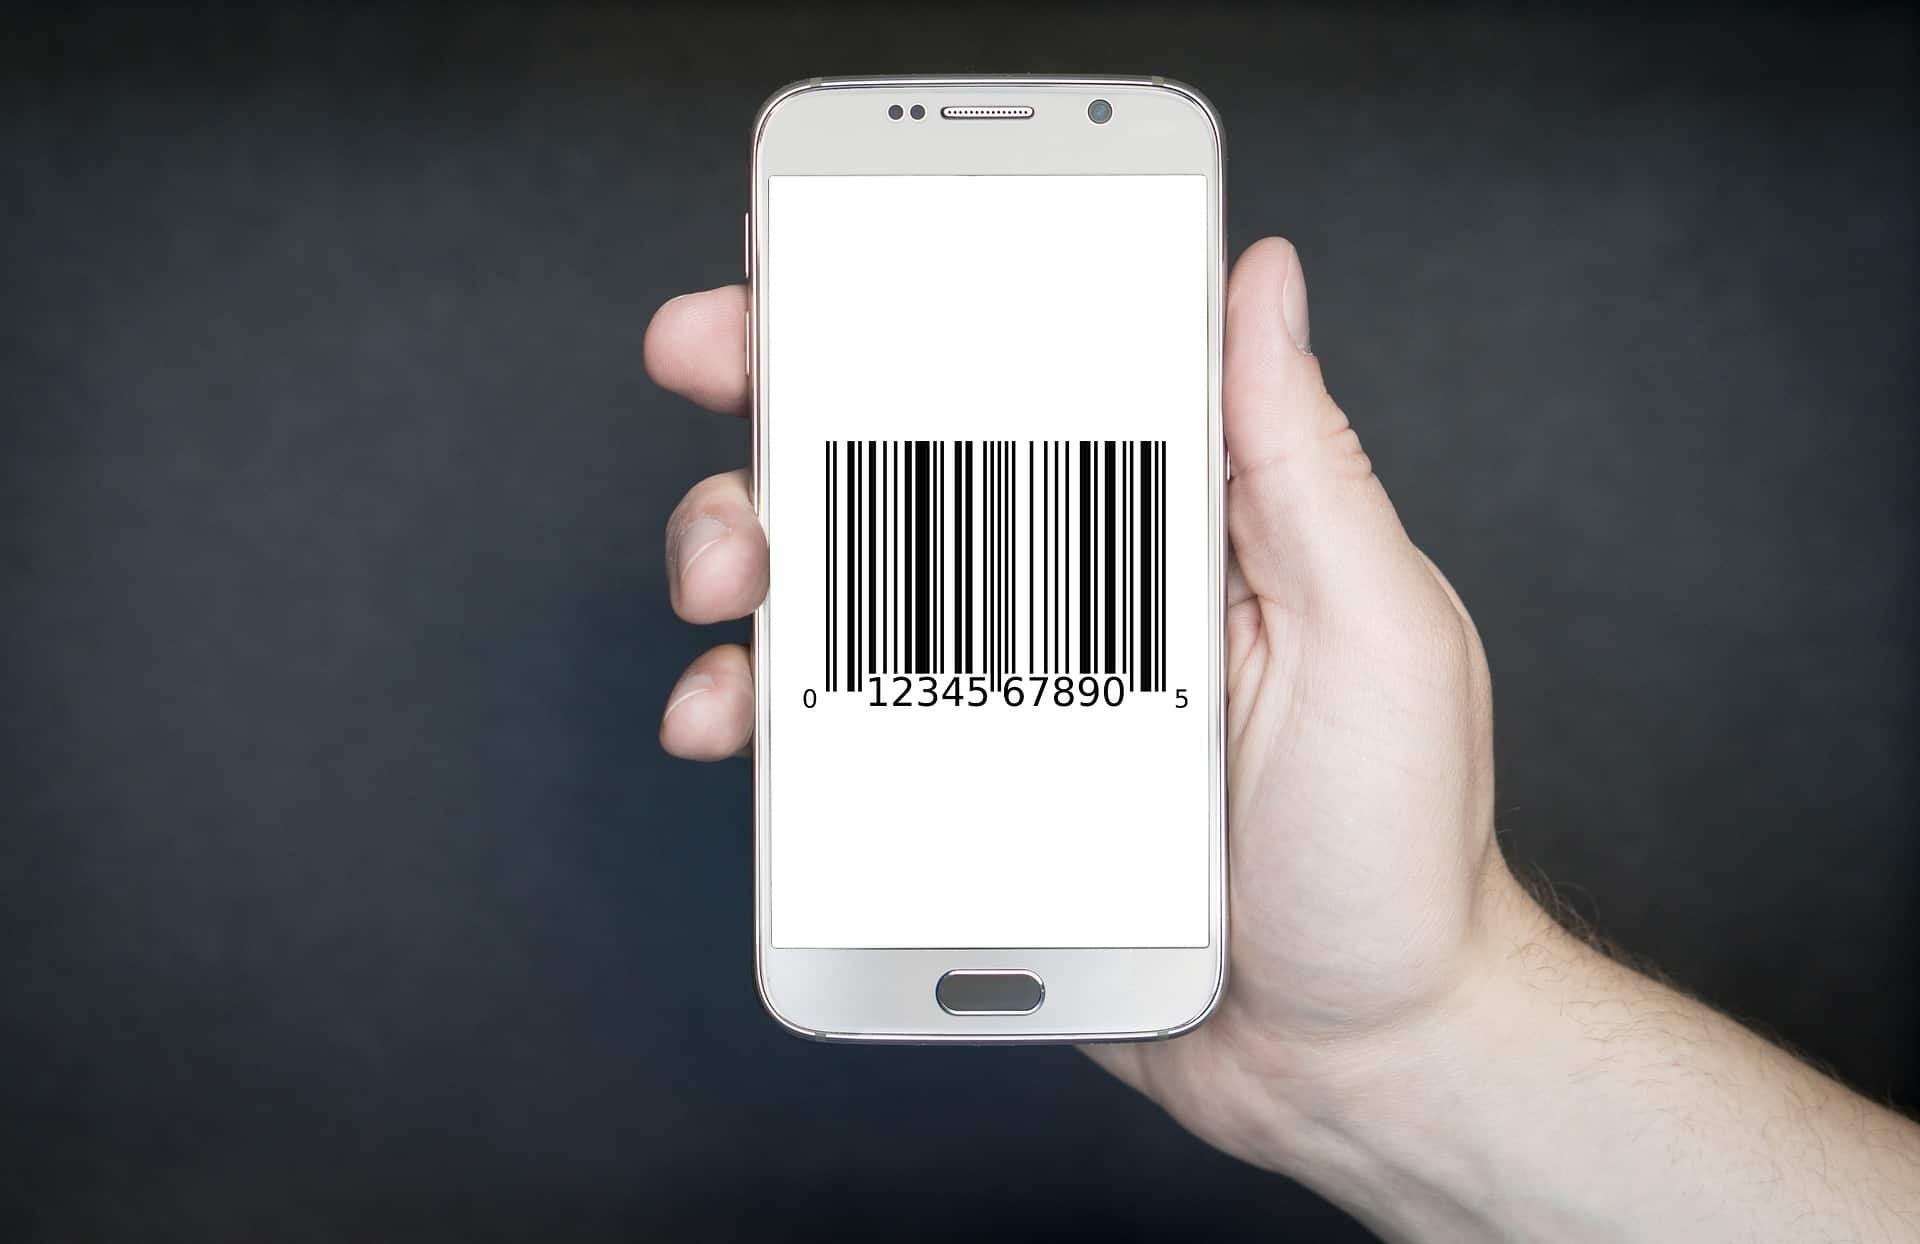 Purchasing Bar Codes From Resellers, Is It Safe